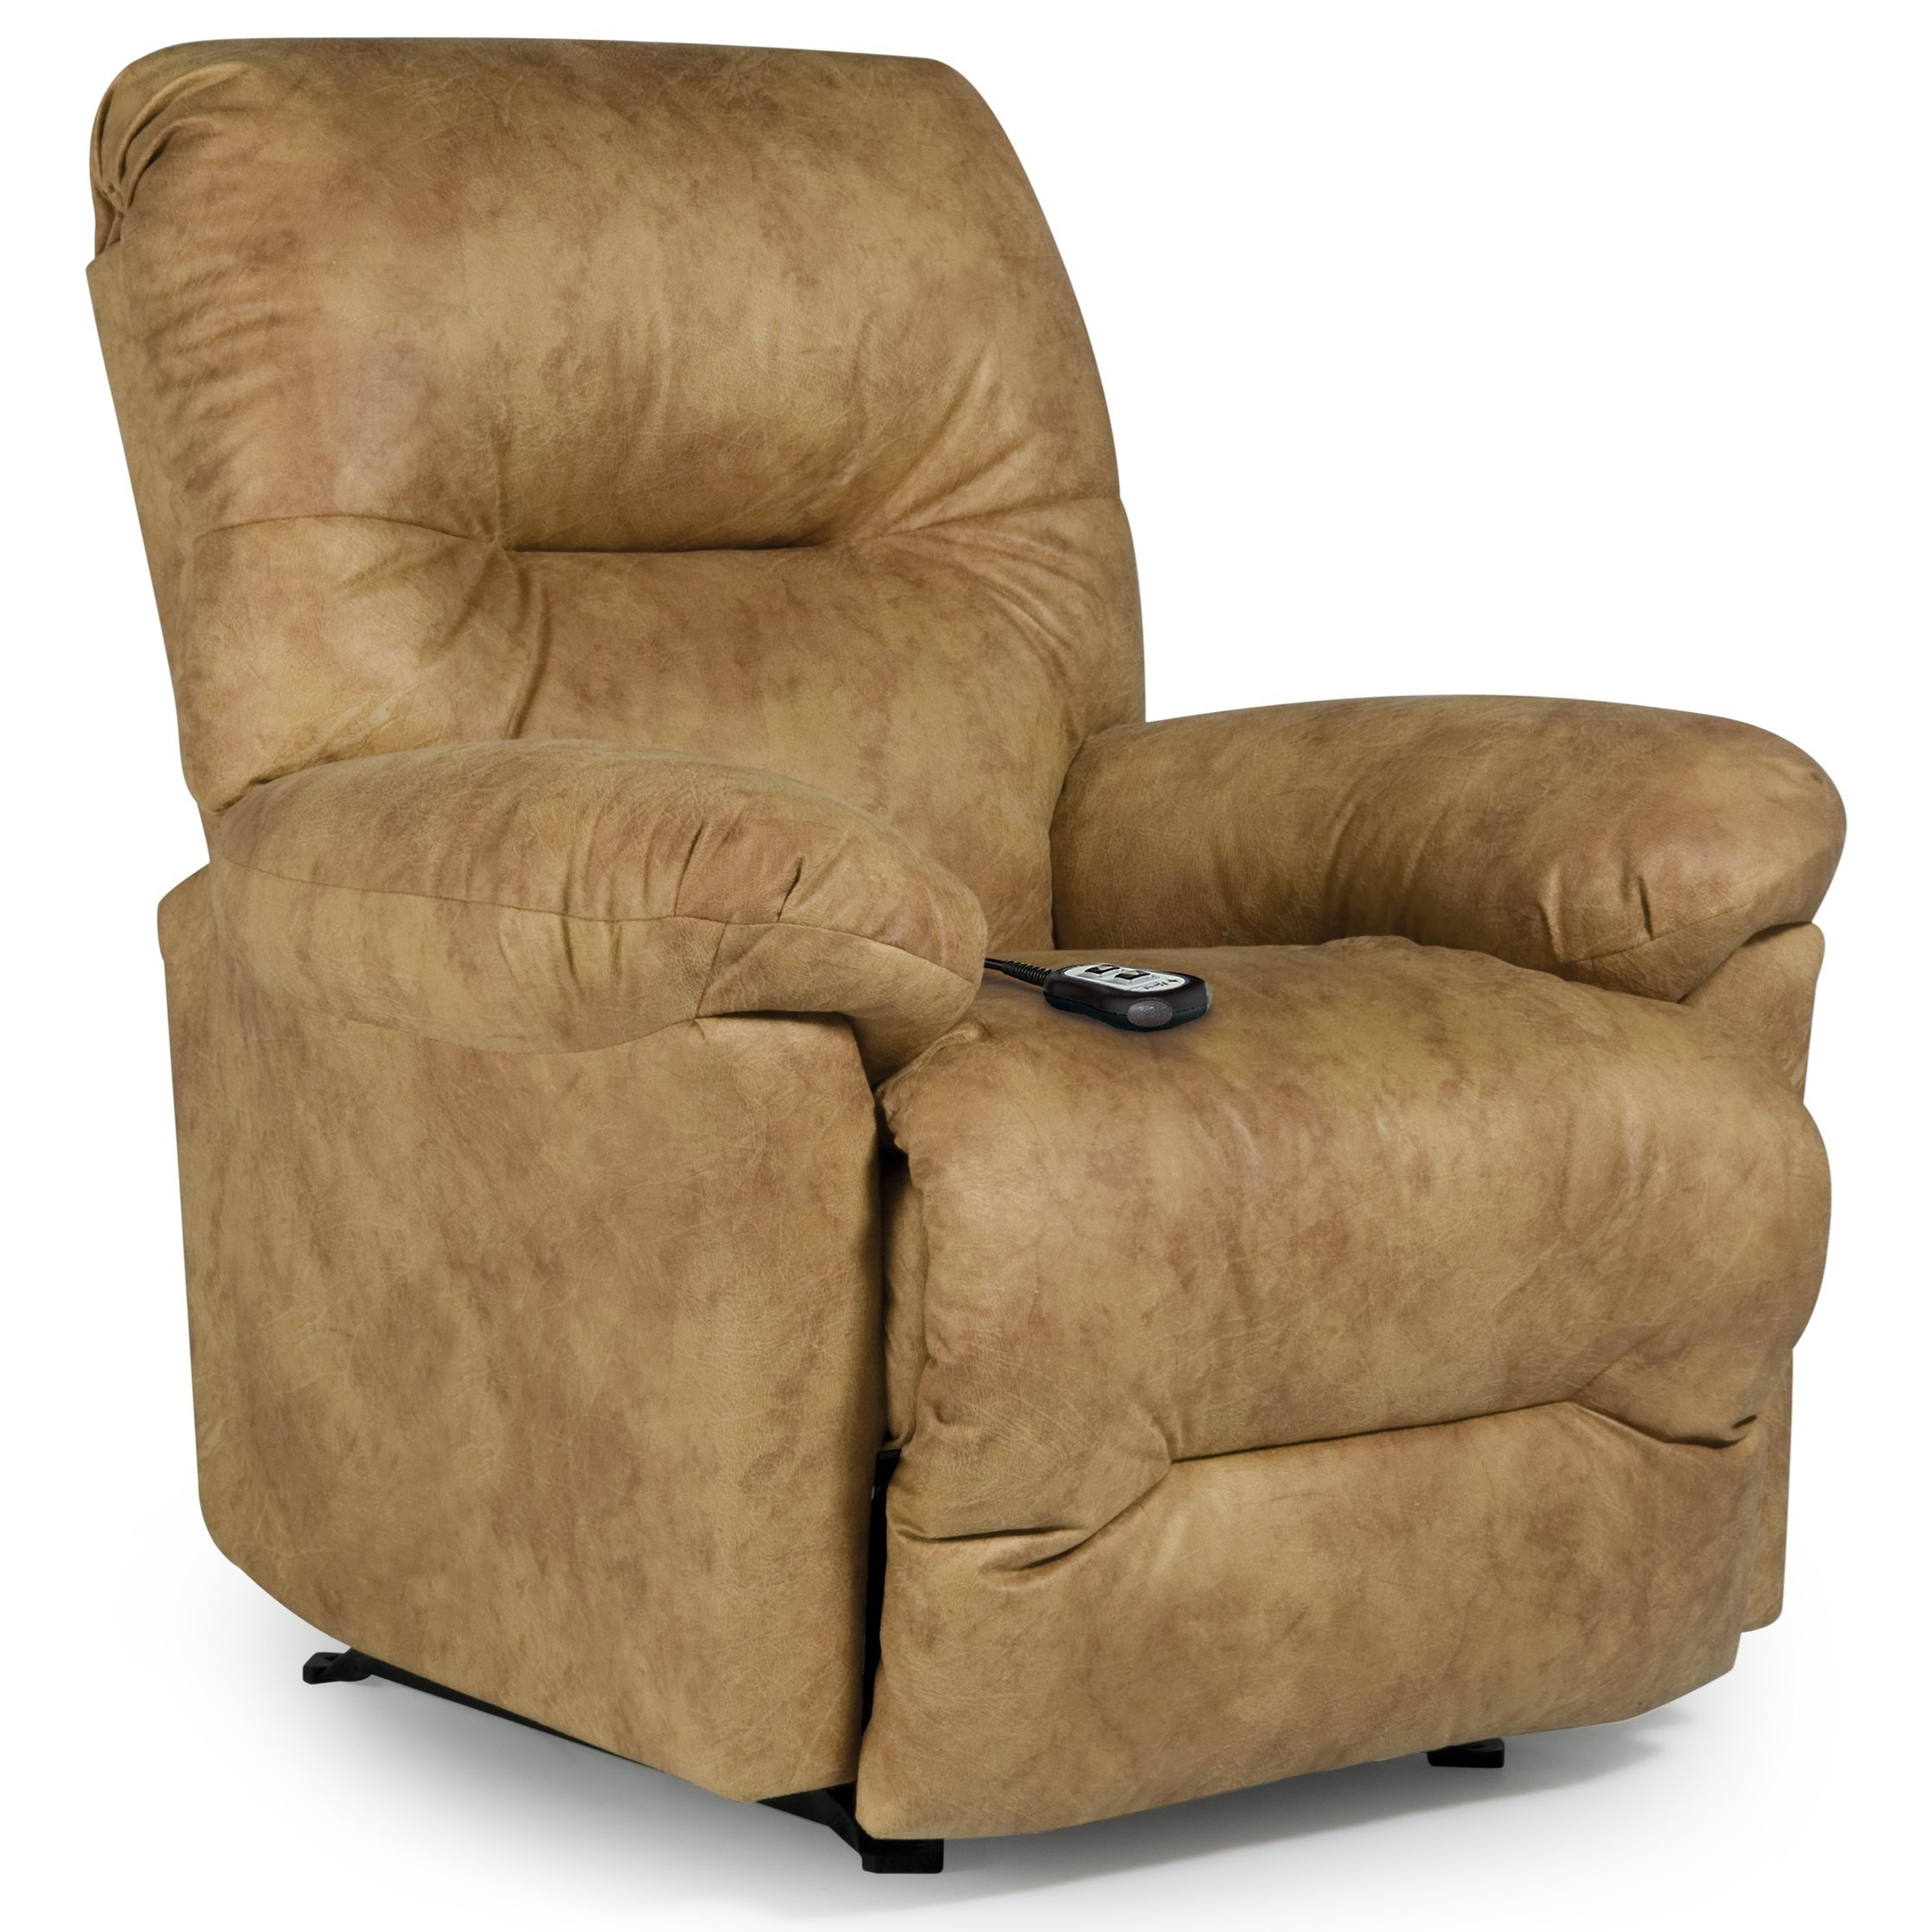 Best Home Furnishings Recliners - Medium Rodney Power Lift Recliner - Item Number: -1953596164-24969